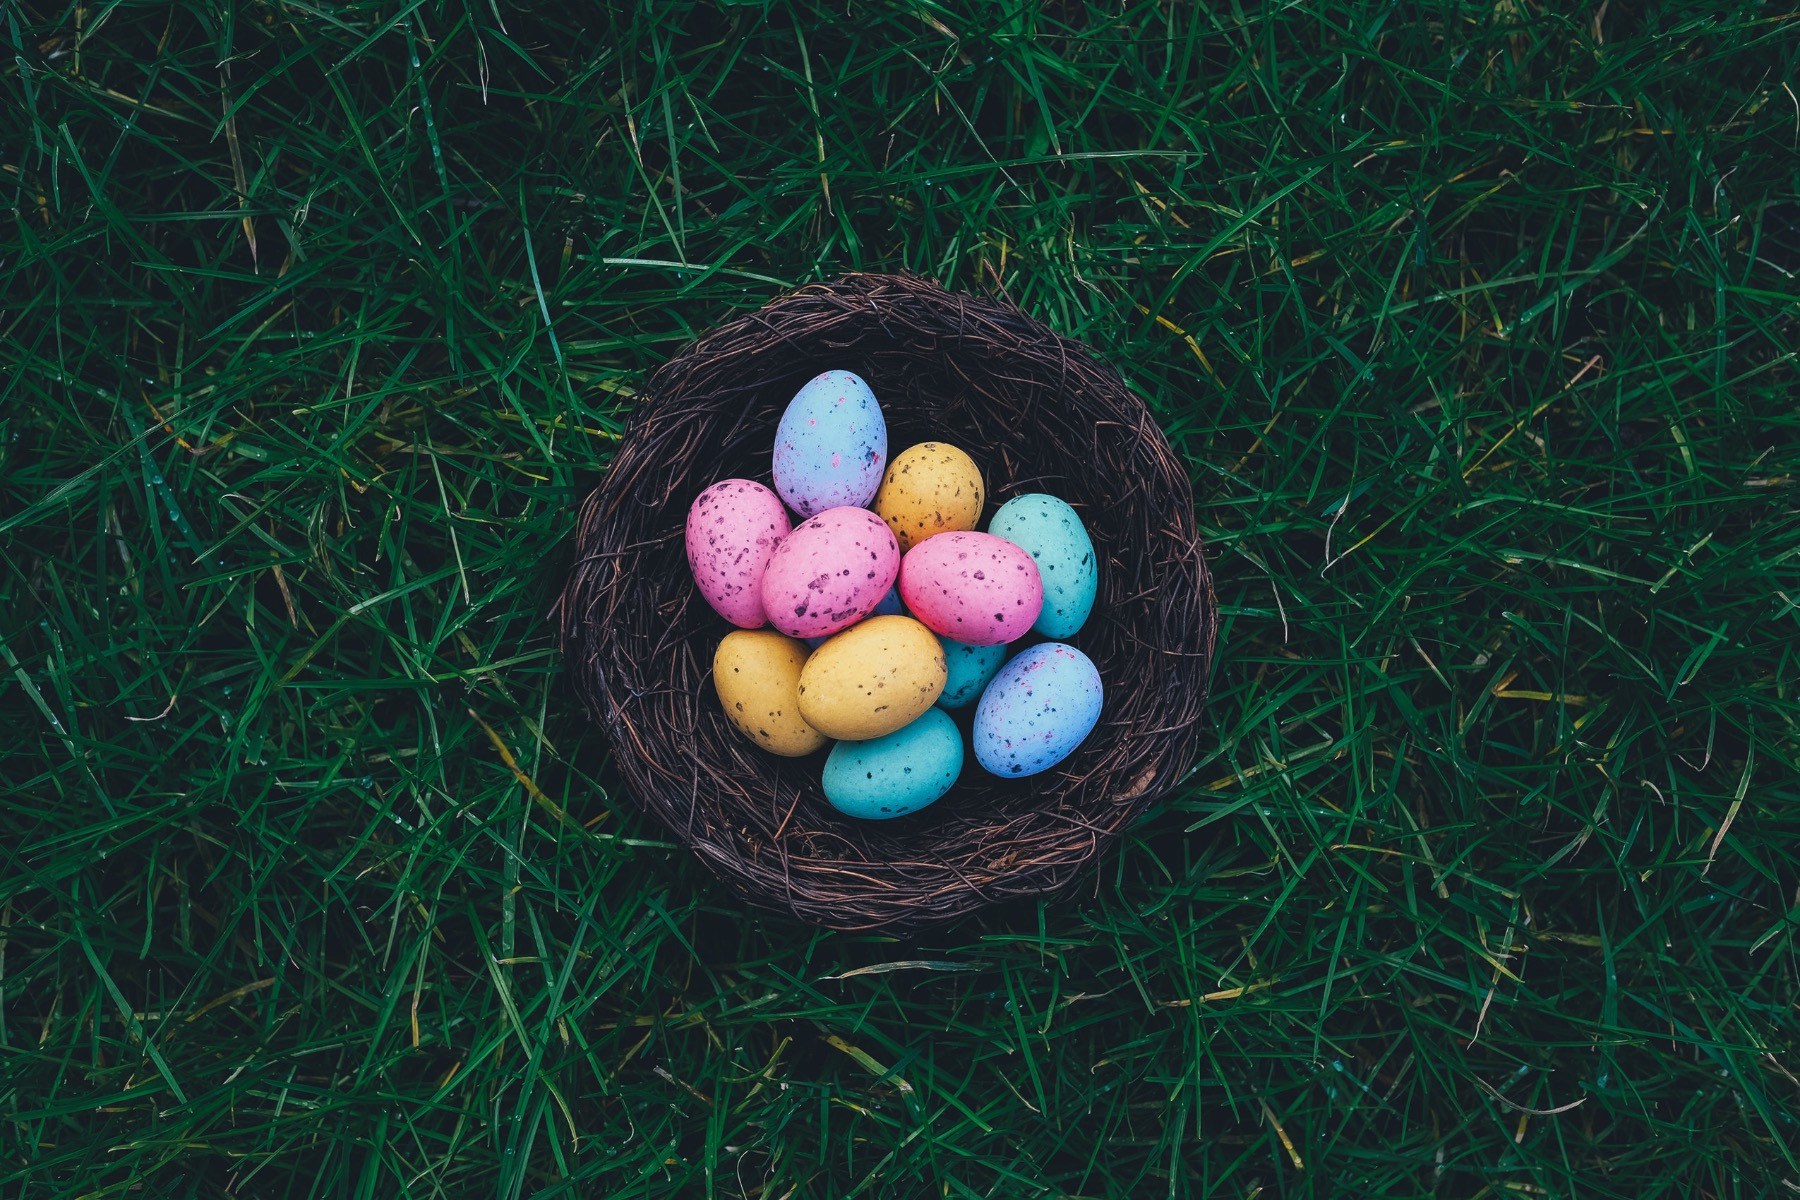 A selection of brightly coloured eggs laid in a wooden nest on some grass.